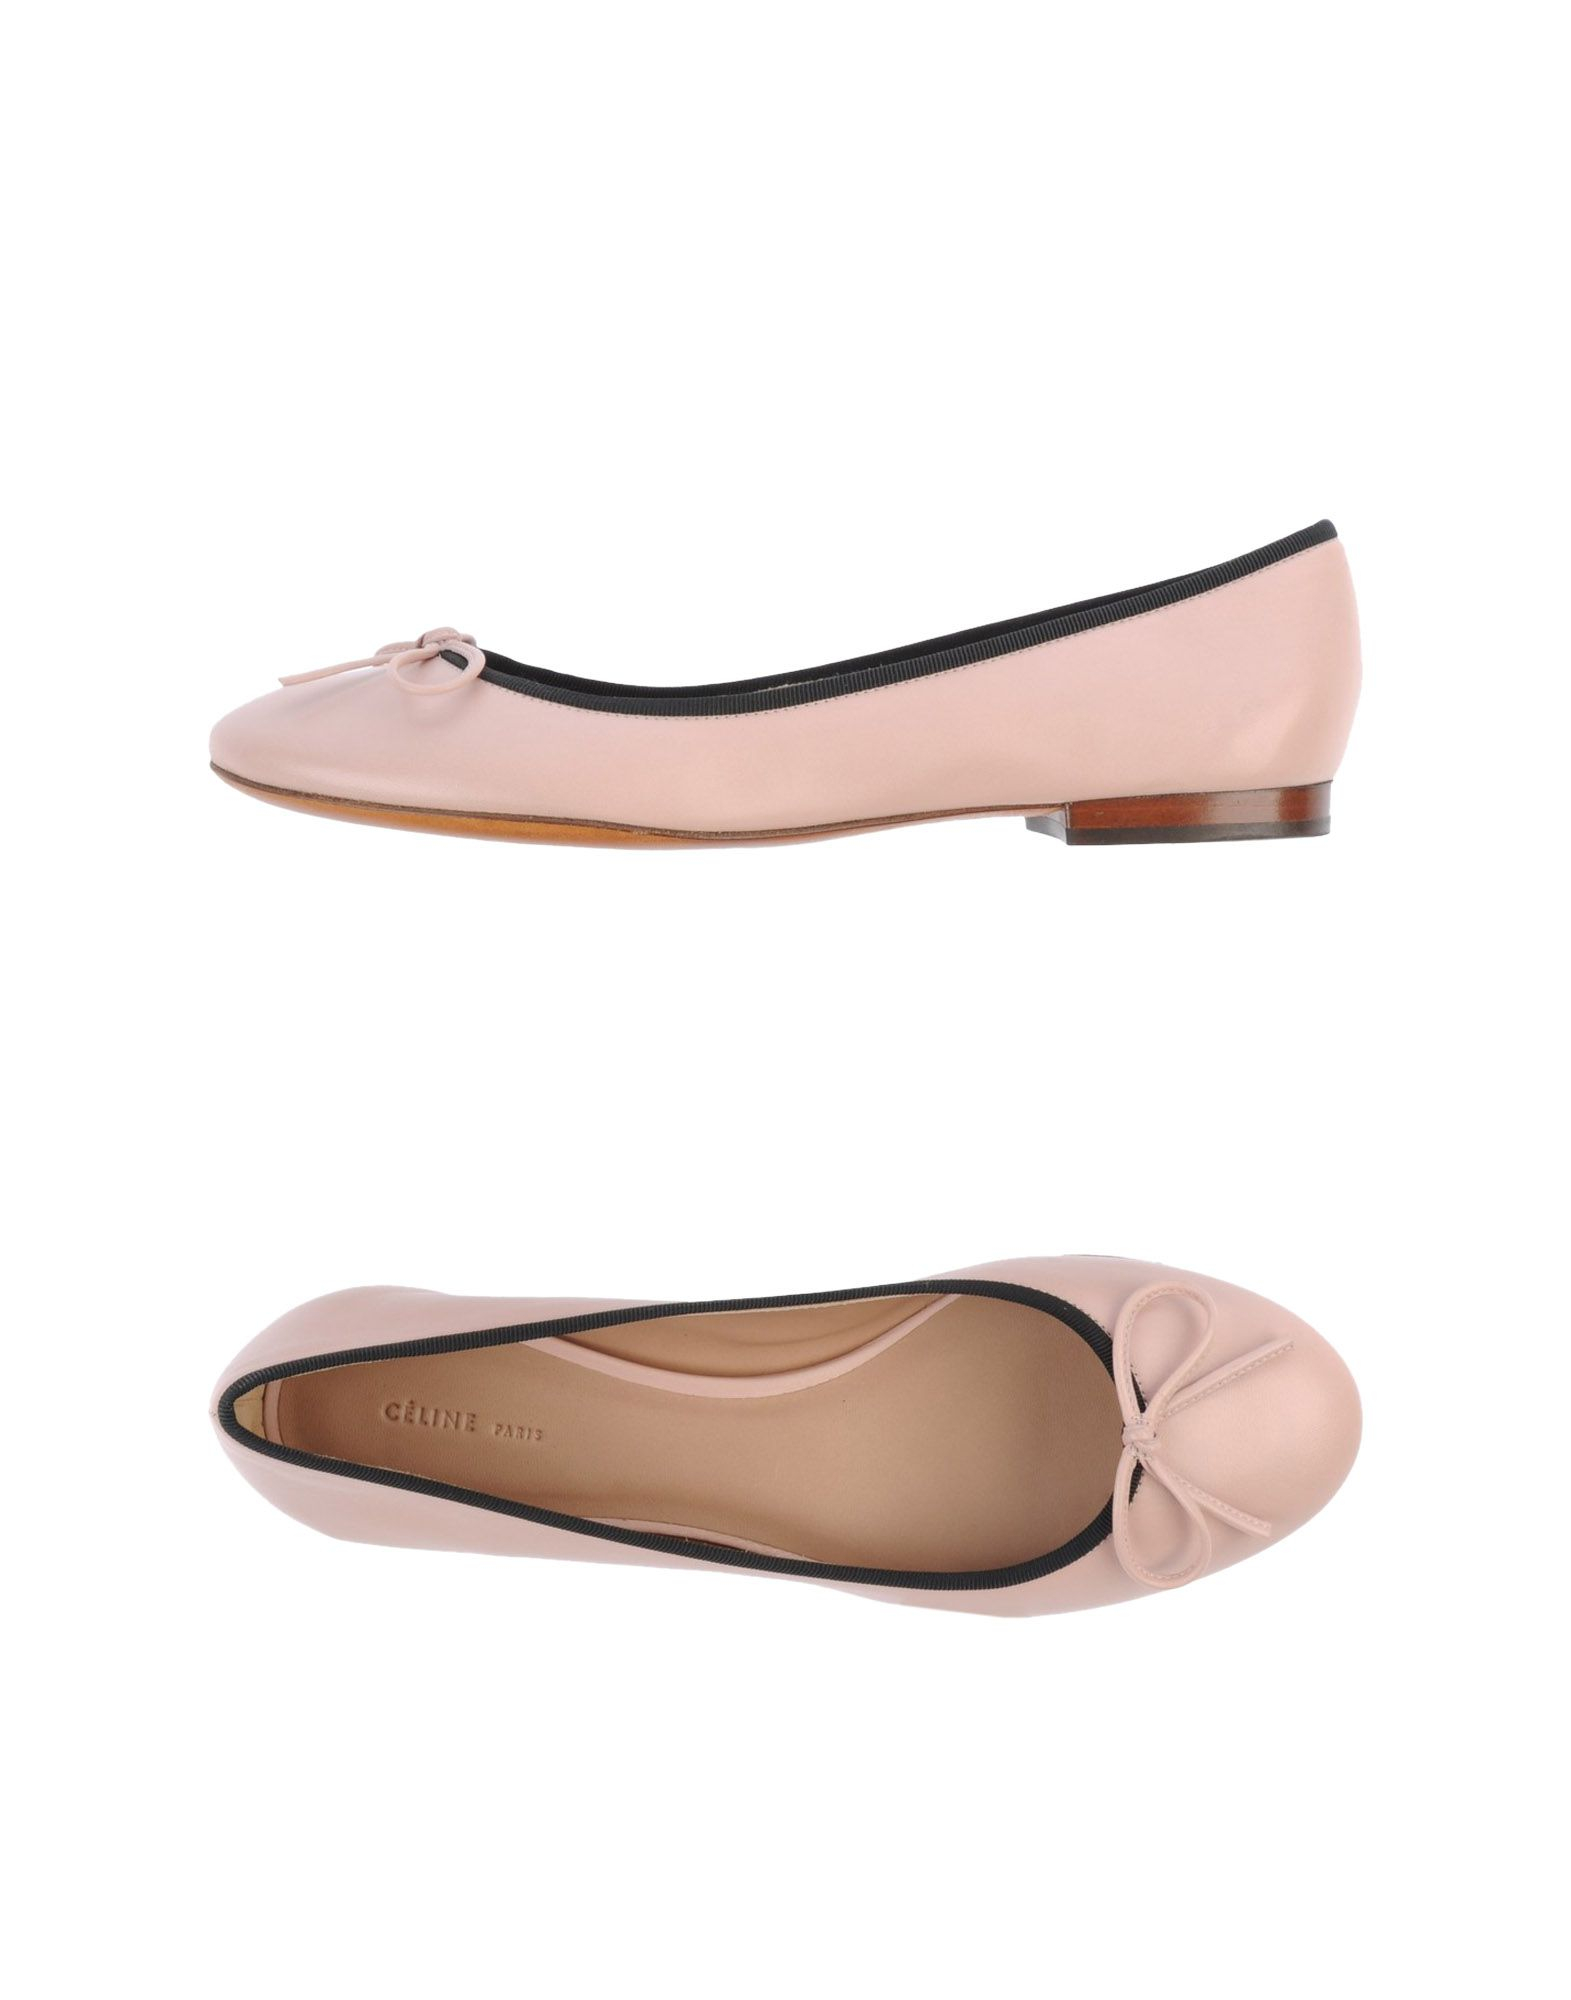 Browse the latest trends and view our great selection of black flats, white flats, red flats, fashion flats & more. Pink Flats. Narrow by Brand. Naturalizer. Dr. Scholl's. Franco Sarto. Lauren Ralph Lauren. Loly in the sky. Lucky Brand Emmie Ballet Flats.